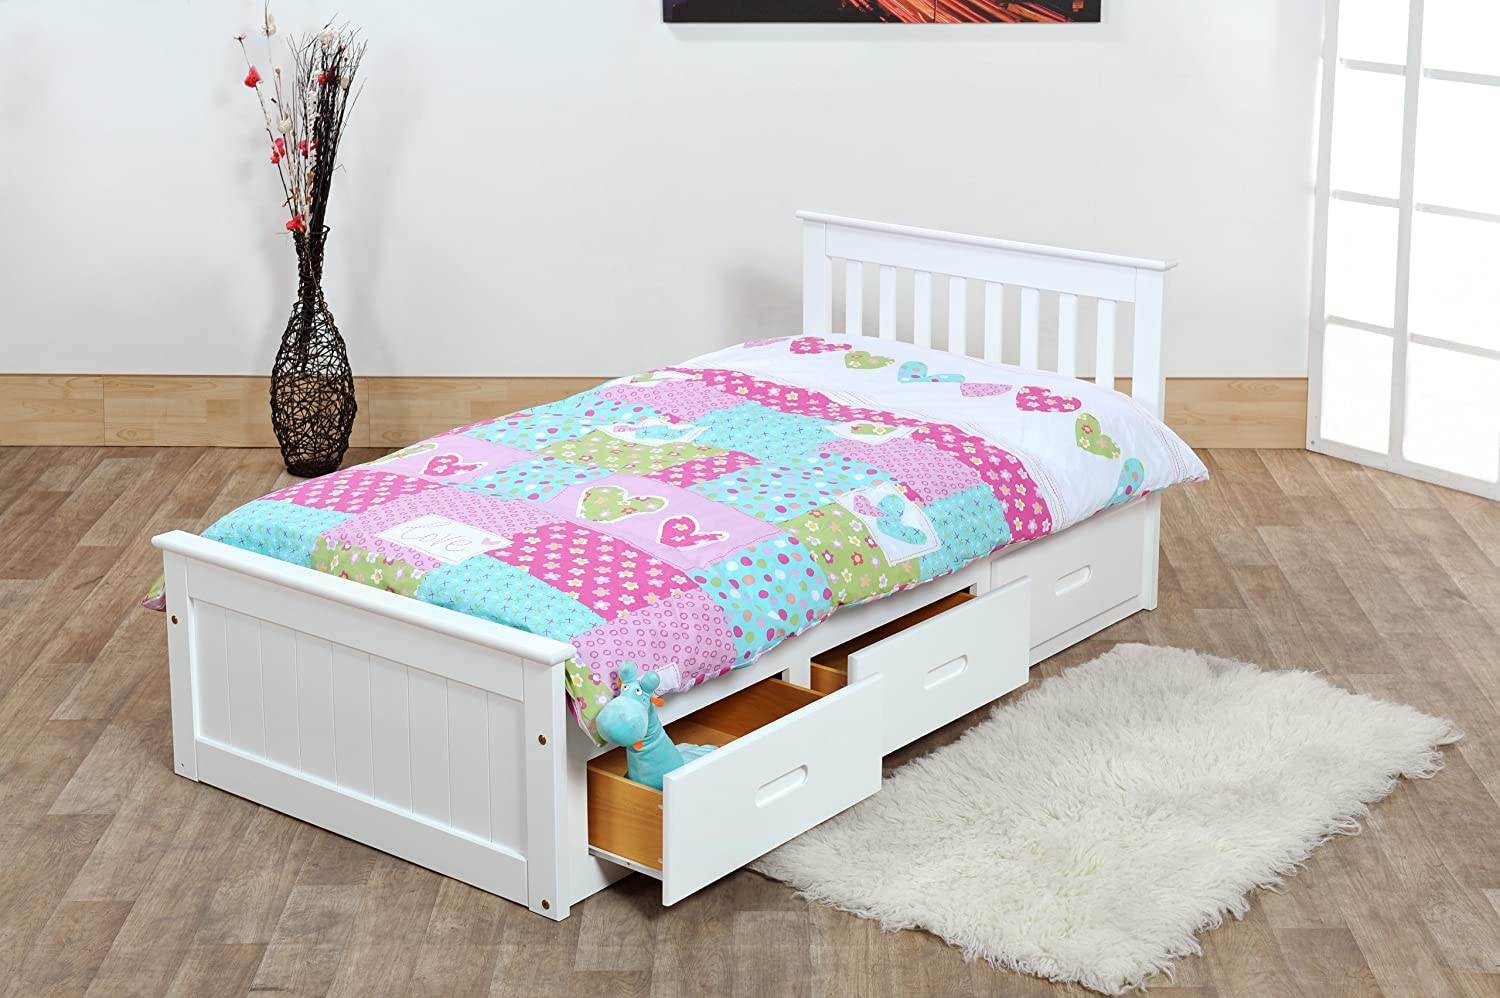 Single bed frame with drawers - Cloudseller Mission 3ft White Bed With 3 Drawers Frame Only Amazon Co Uk Kitchen Home